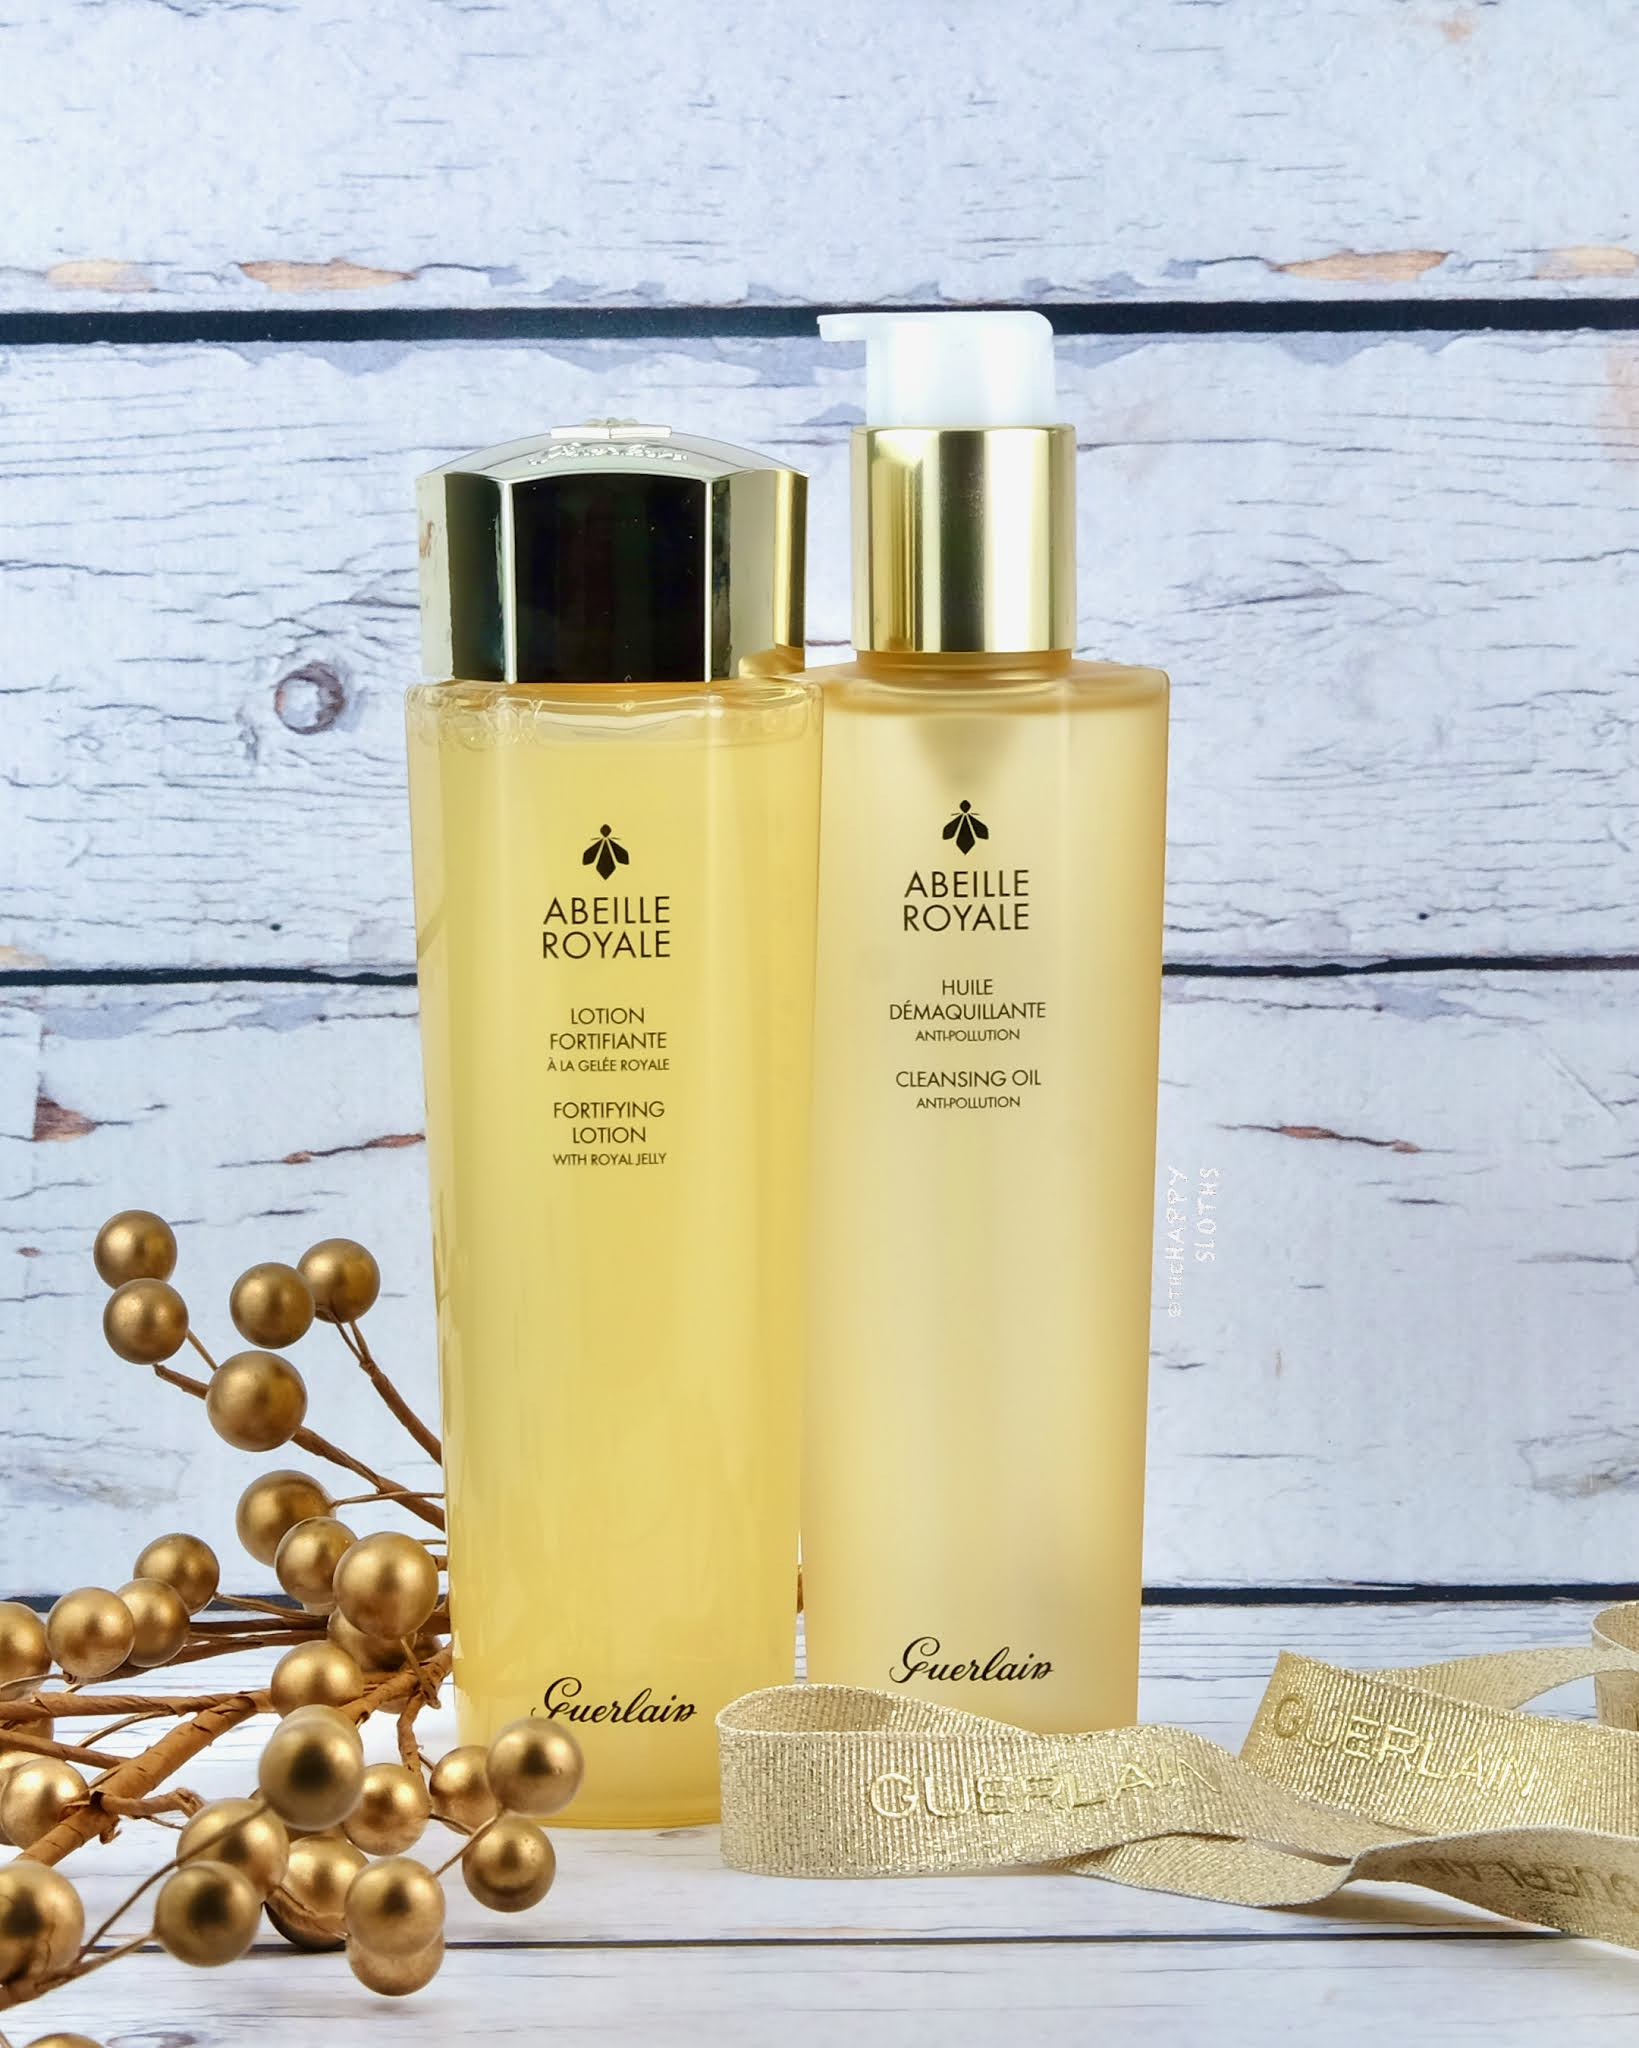 Guerlain | Abeille Royale Cleansing Oil & Fortifying Lotion: Review